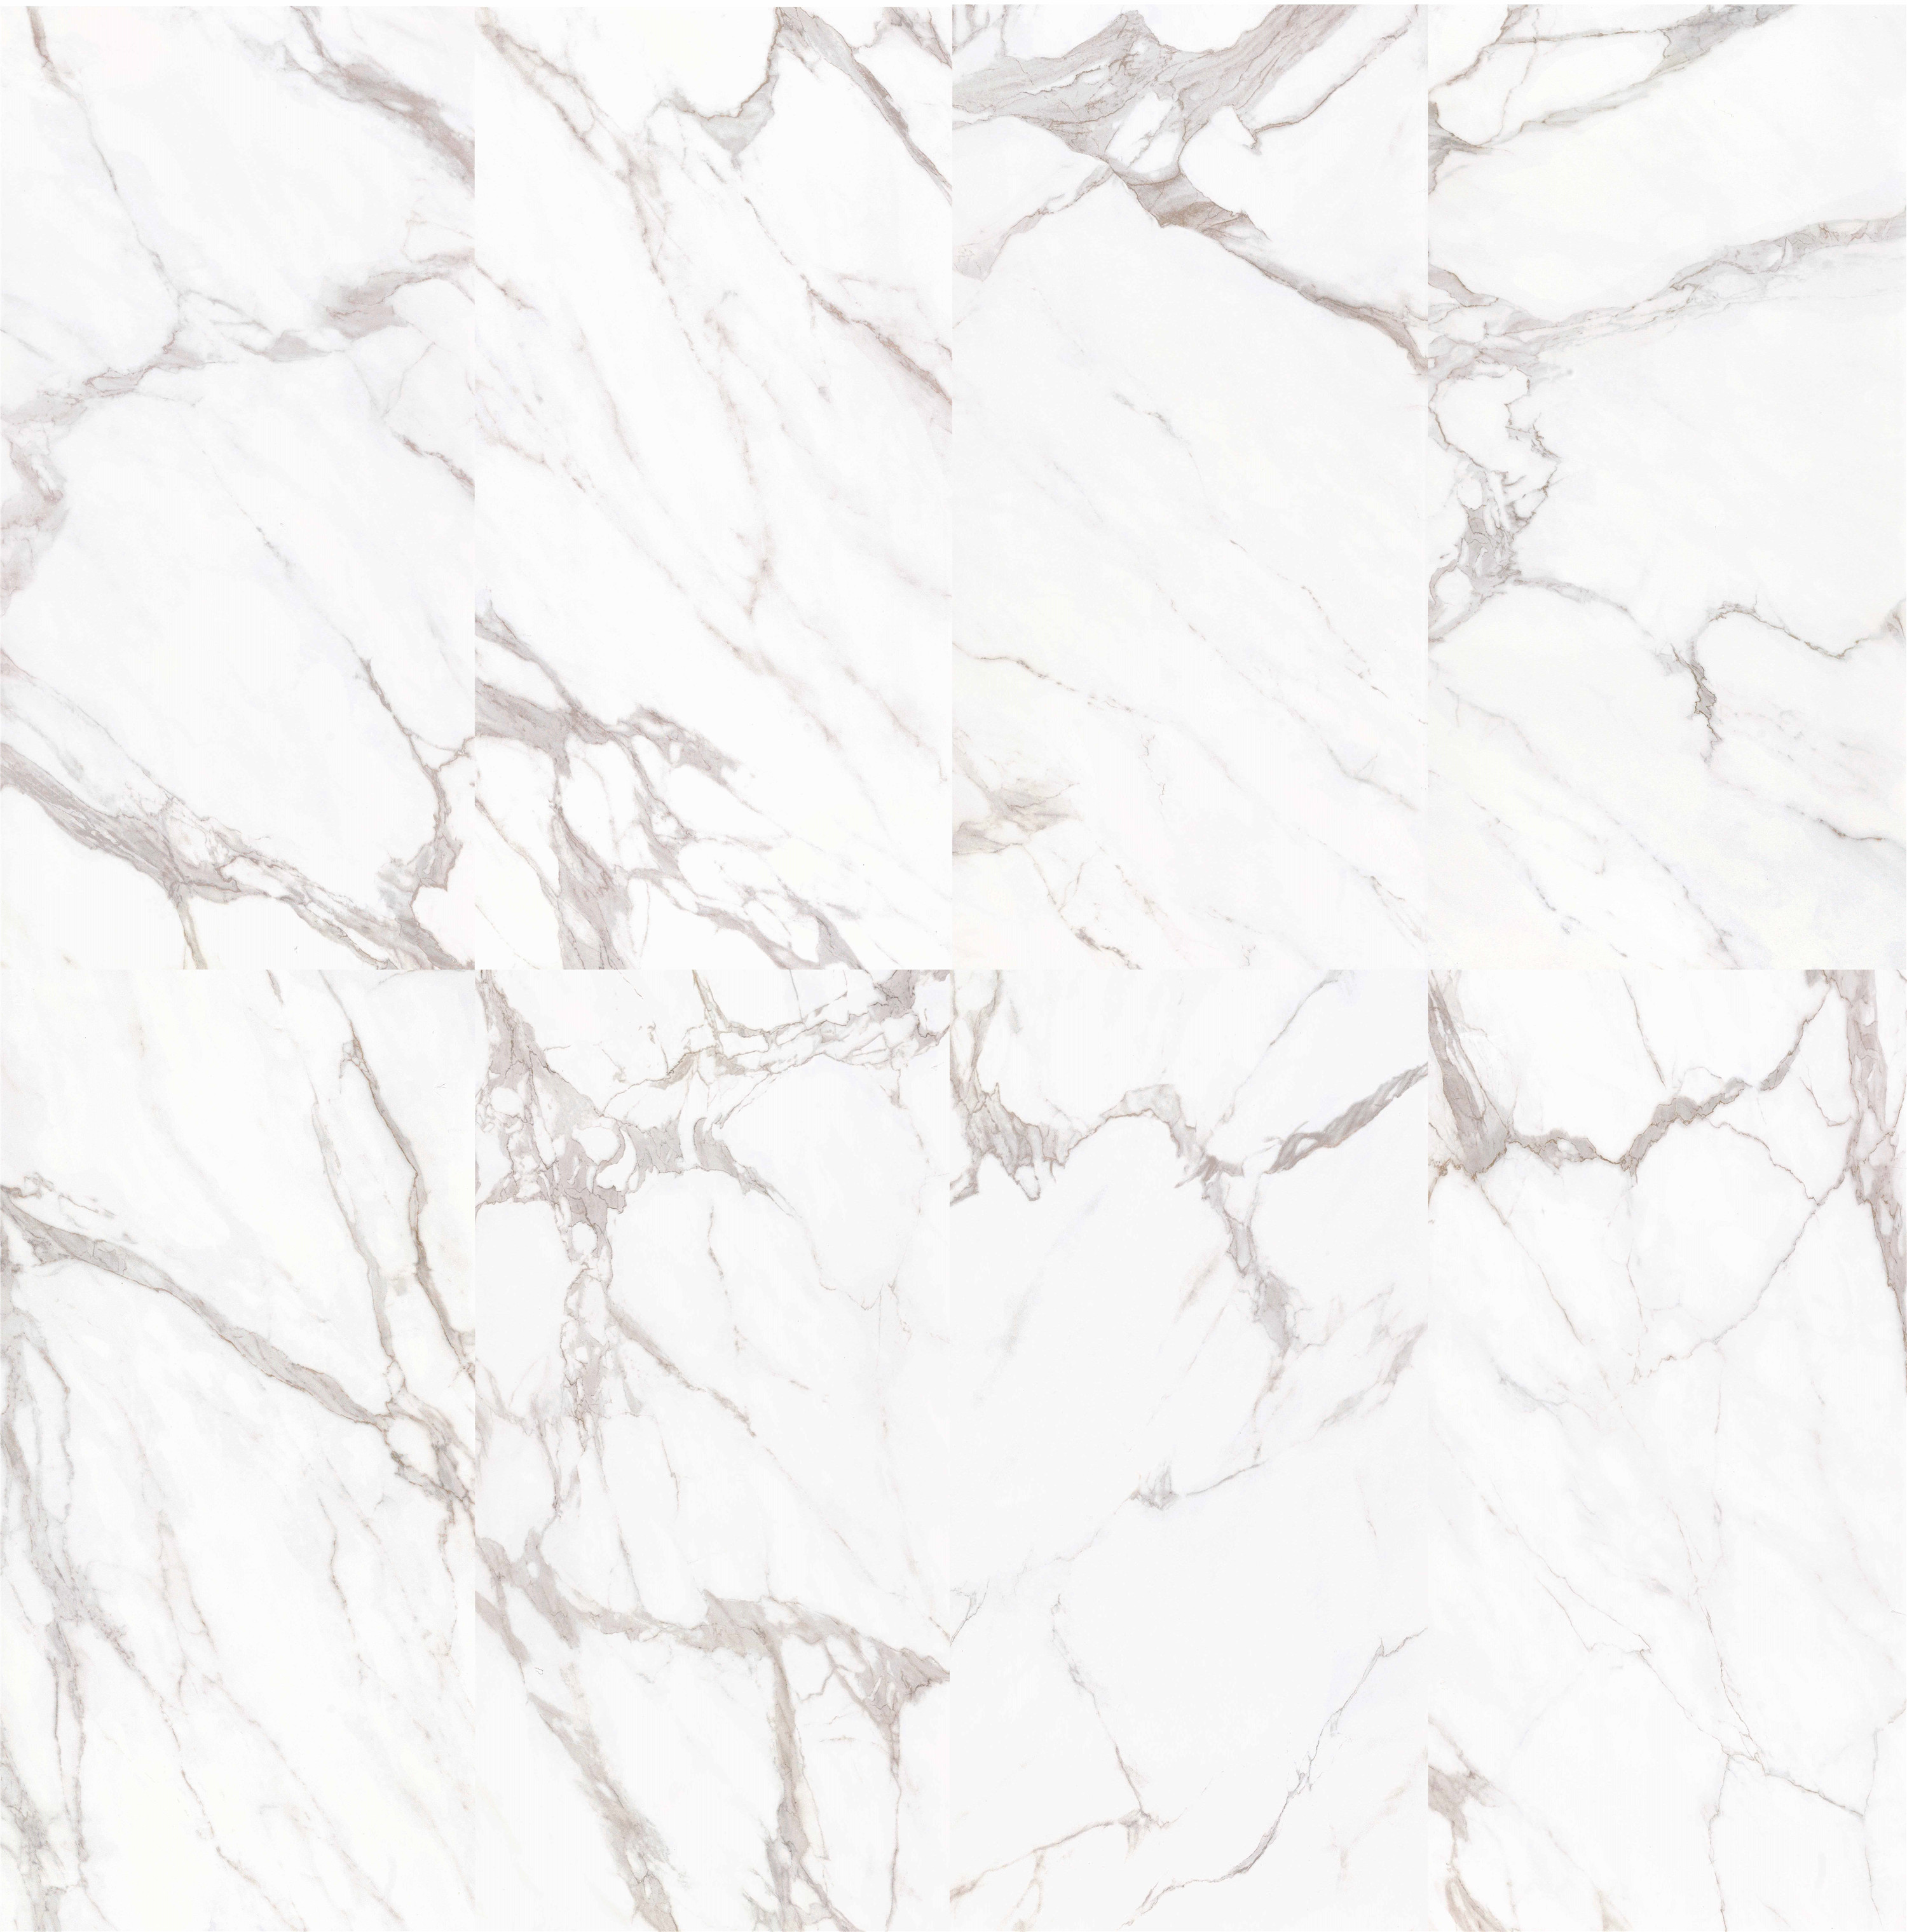 stain resistance White Marble Tiles